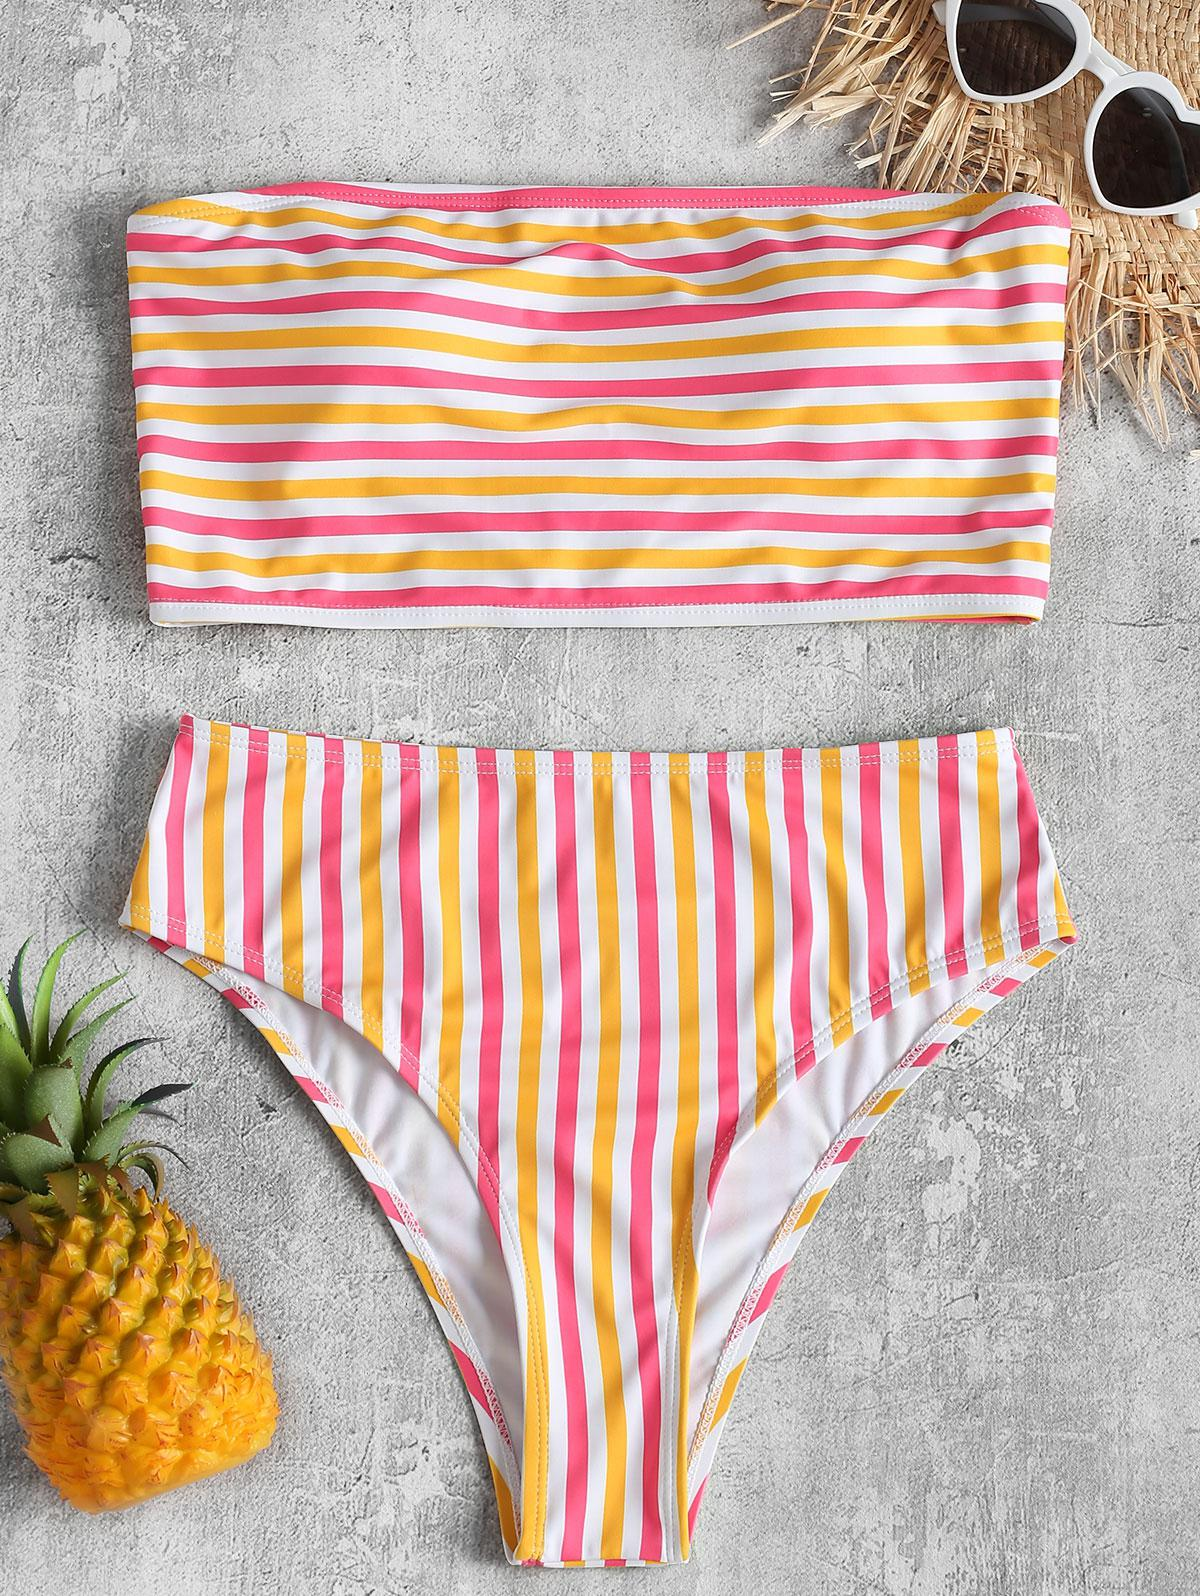 Striped Tube Top with